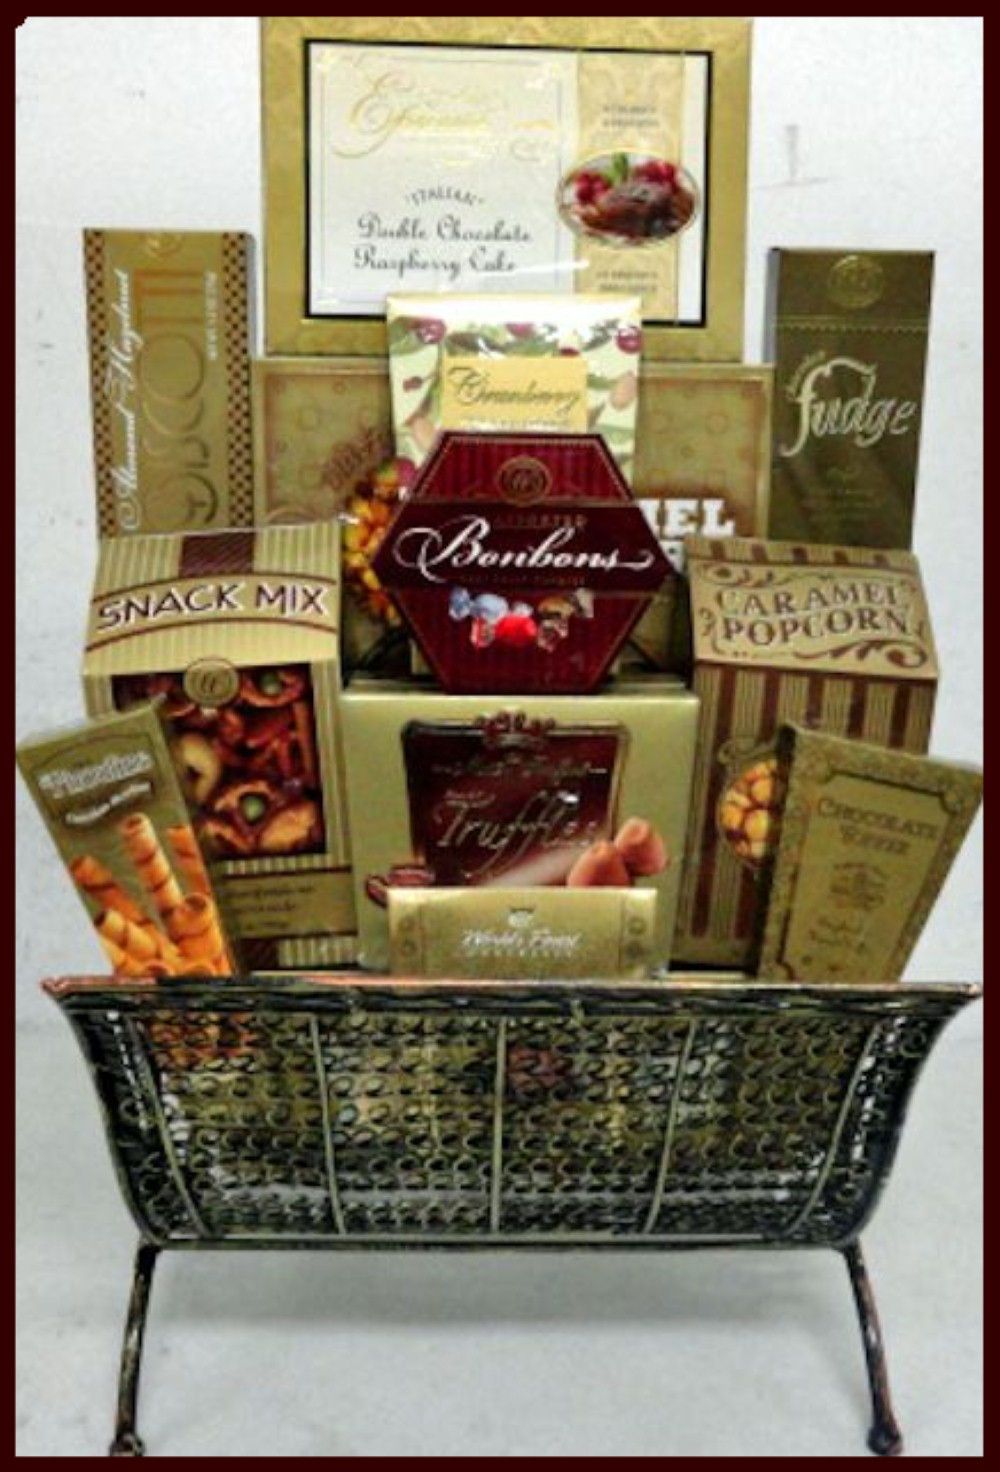 Holiday Gifts & Baskets, The Pampered Professional, Ltd. HEWLETT ...